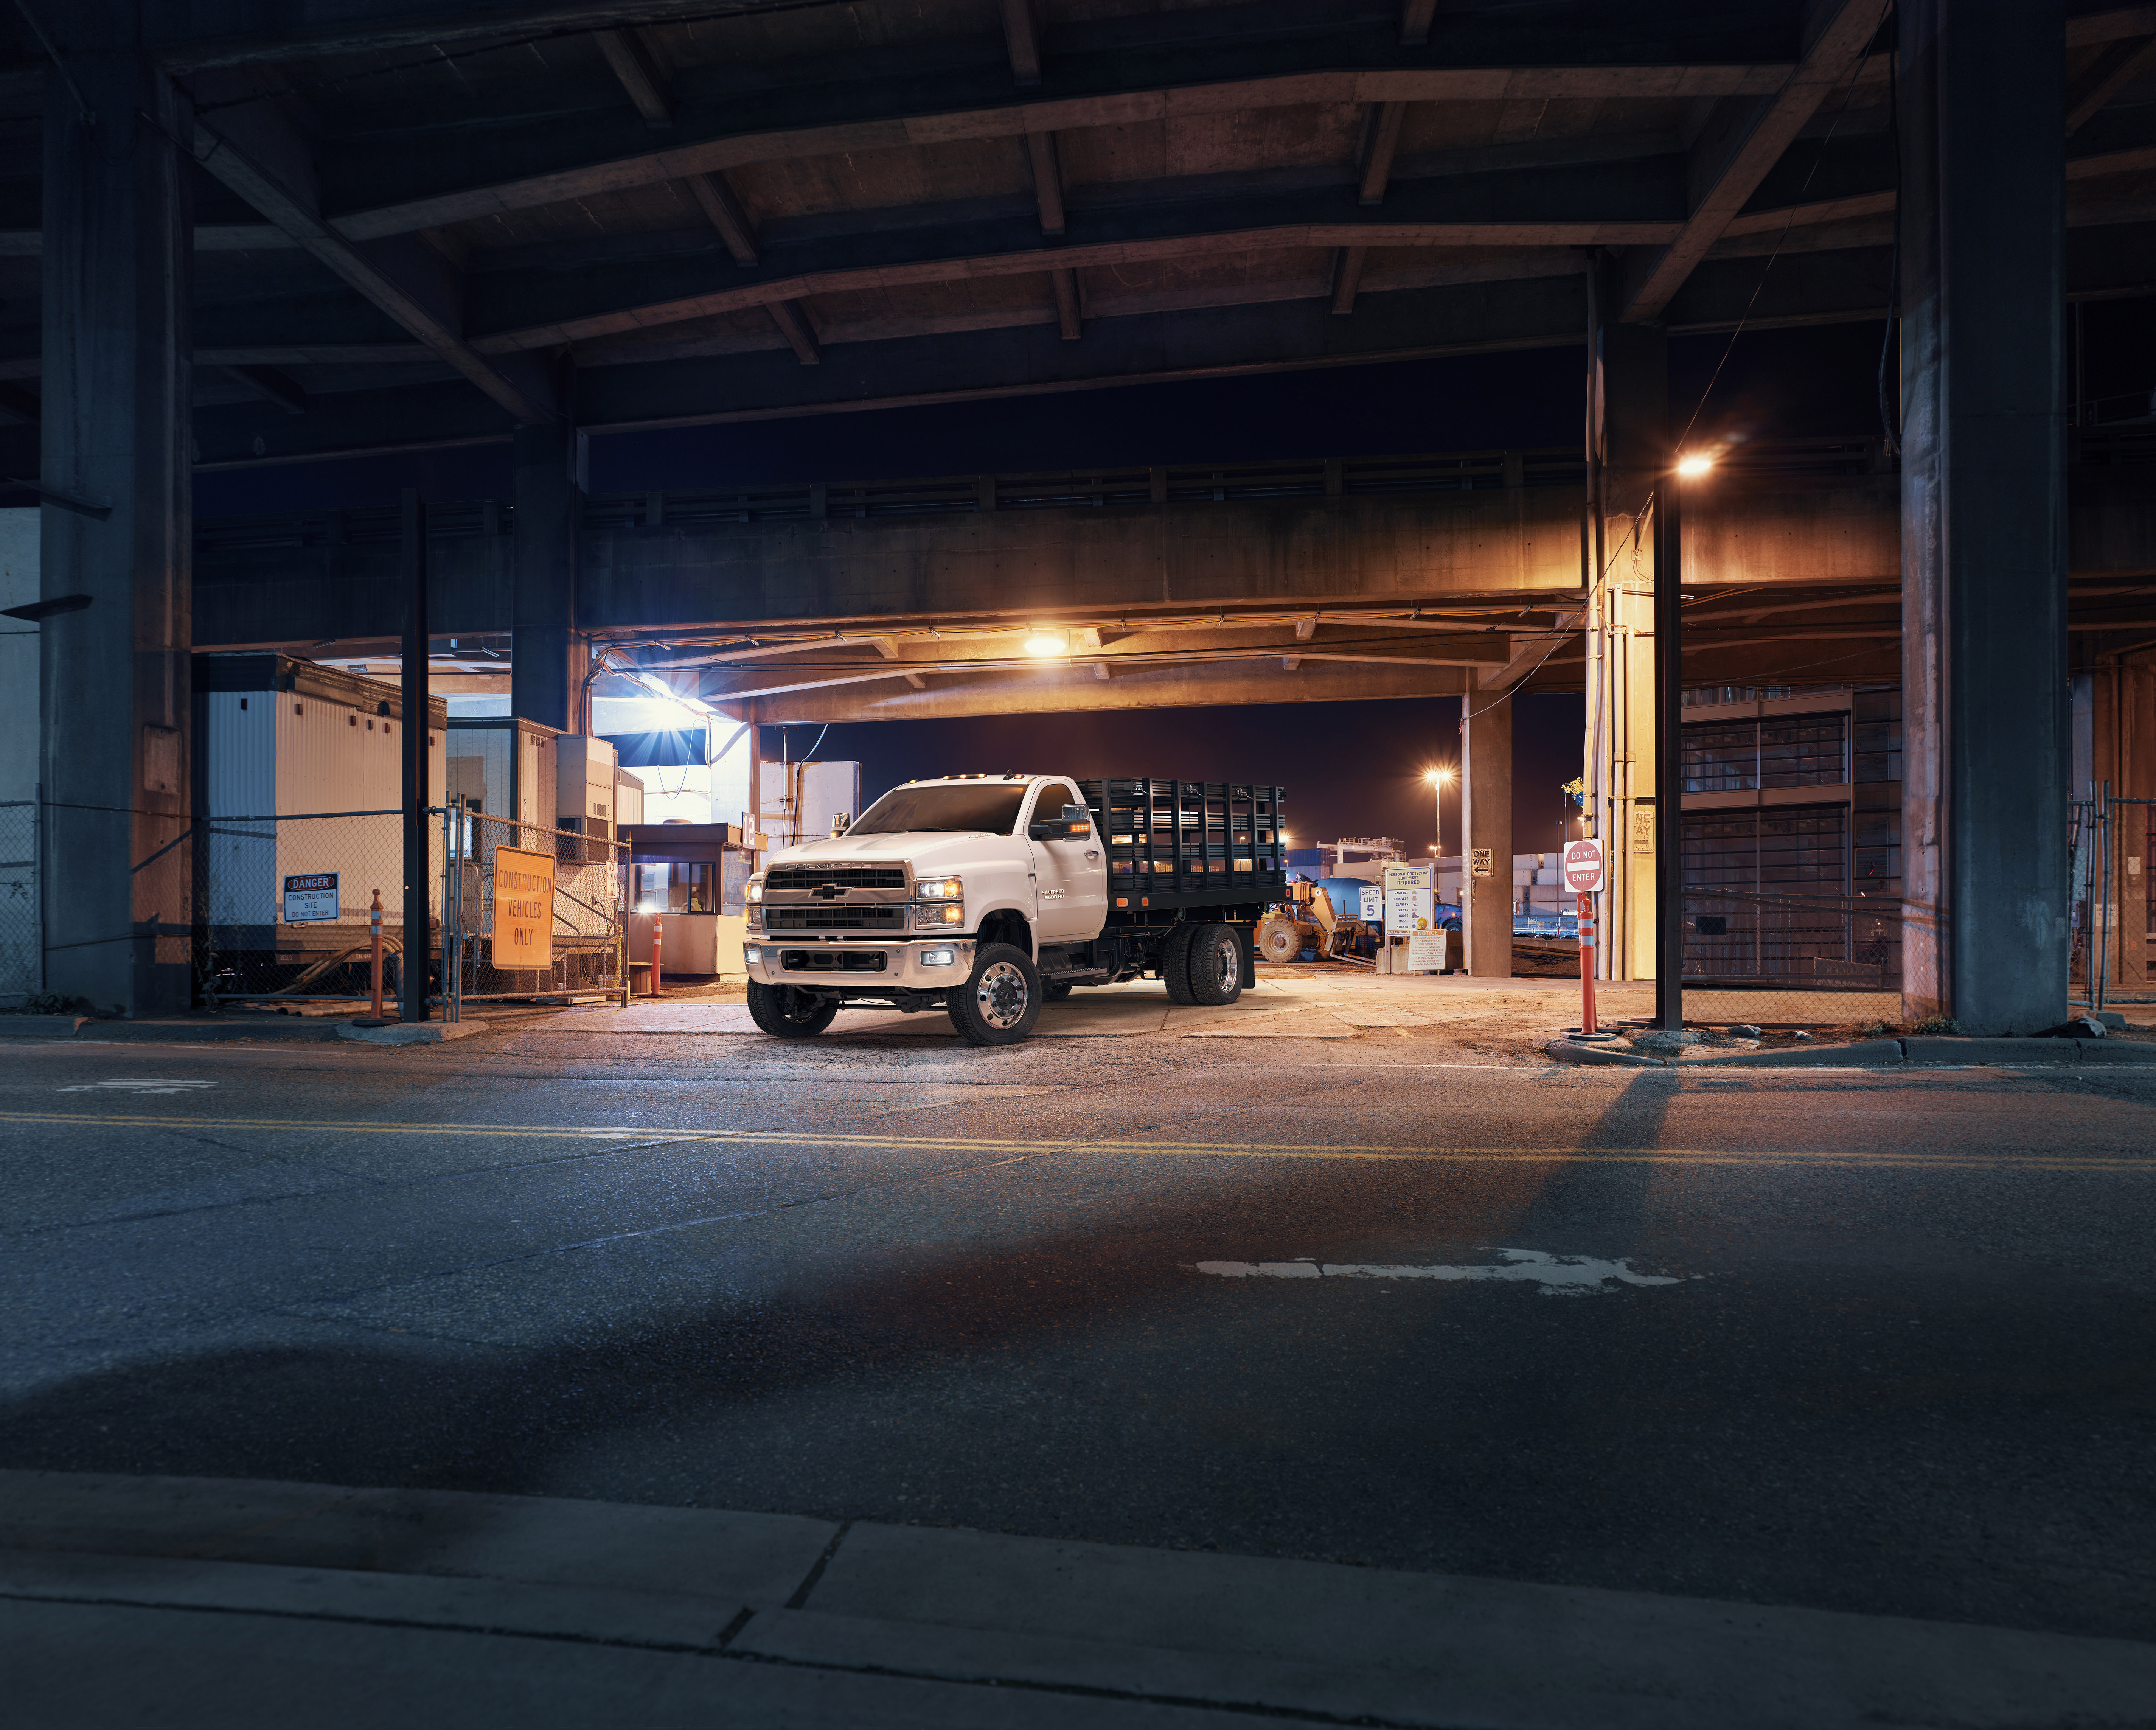 2019 Chevrolet Silverado Chassis Cab 4500hd Msrp Starts At 48465 Gmc Topkick C5500 4x4 Crew For Sale